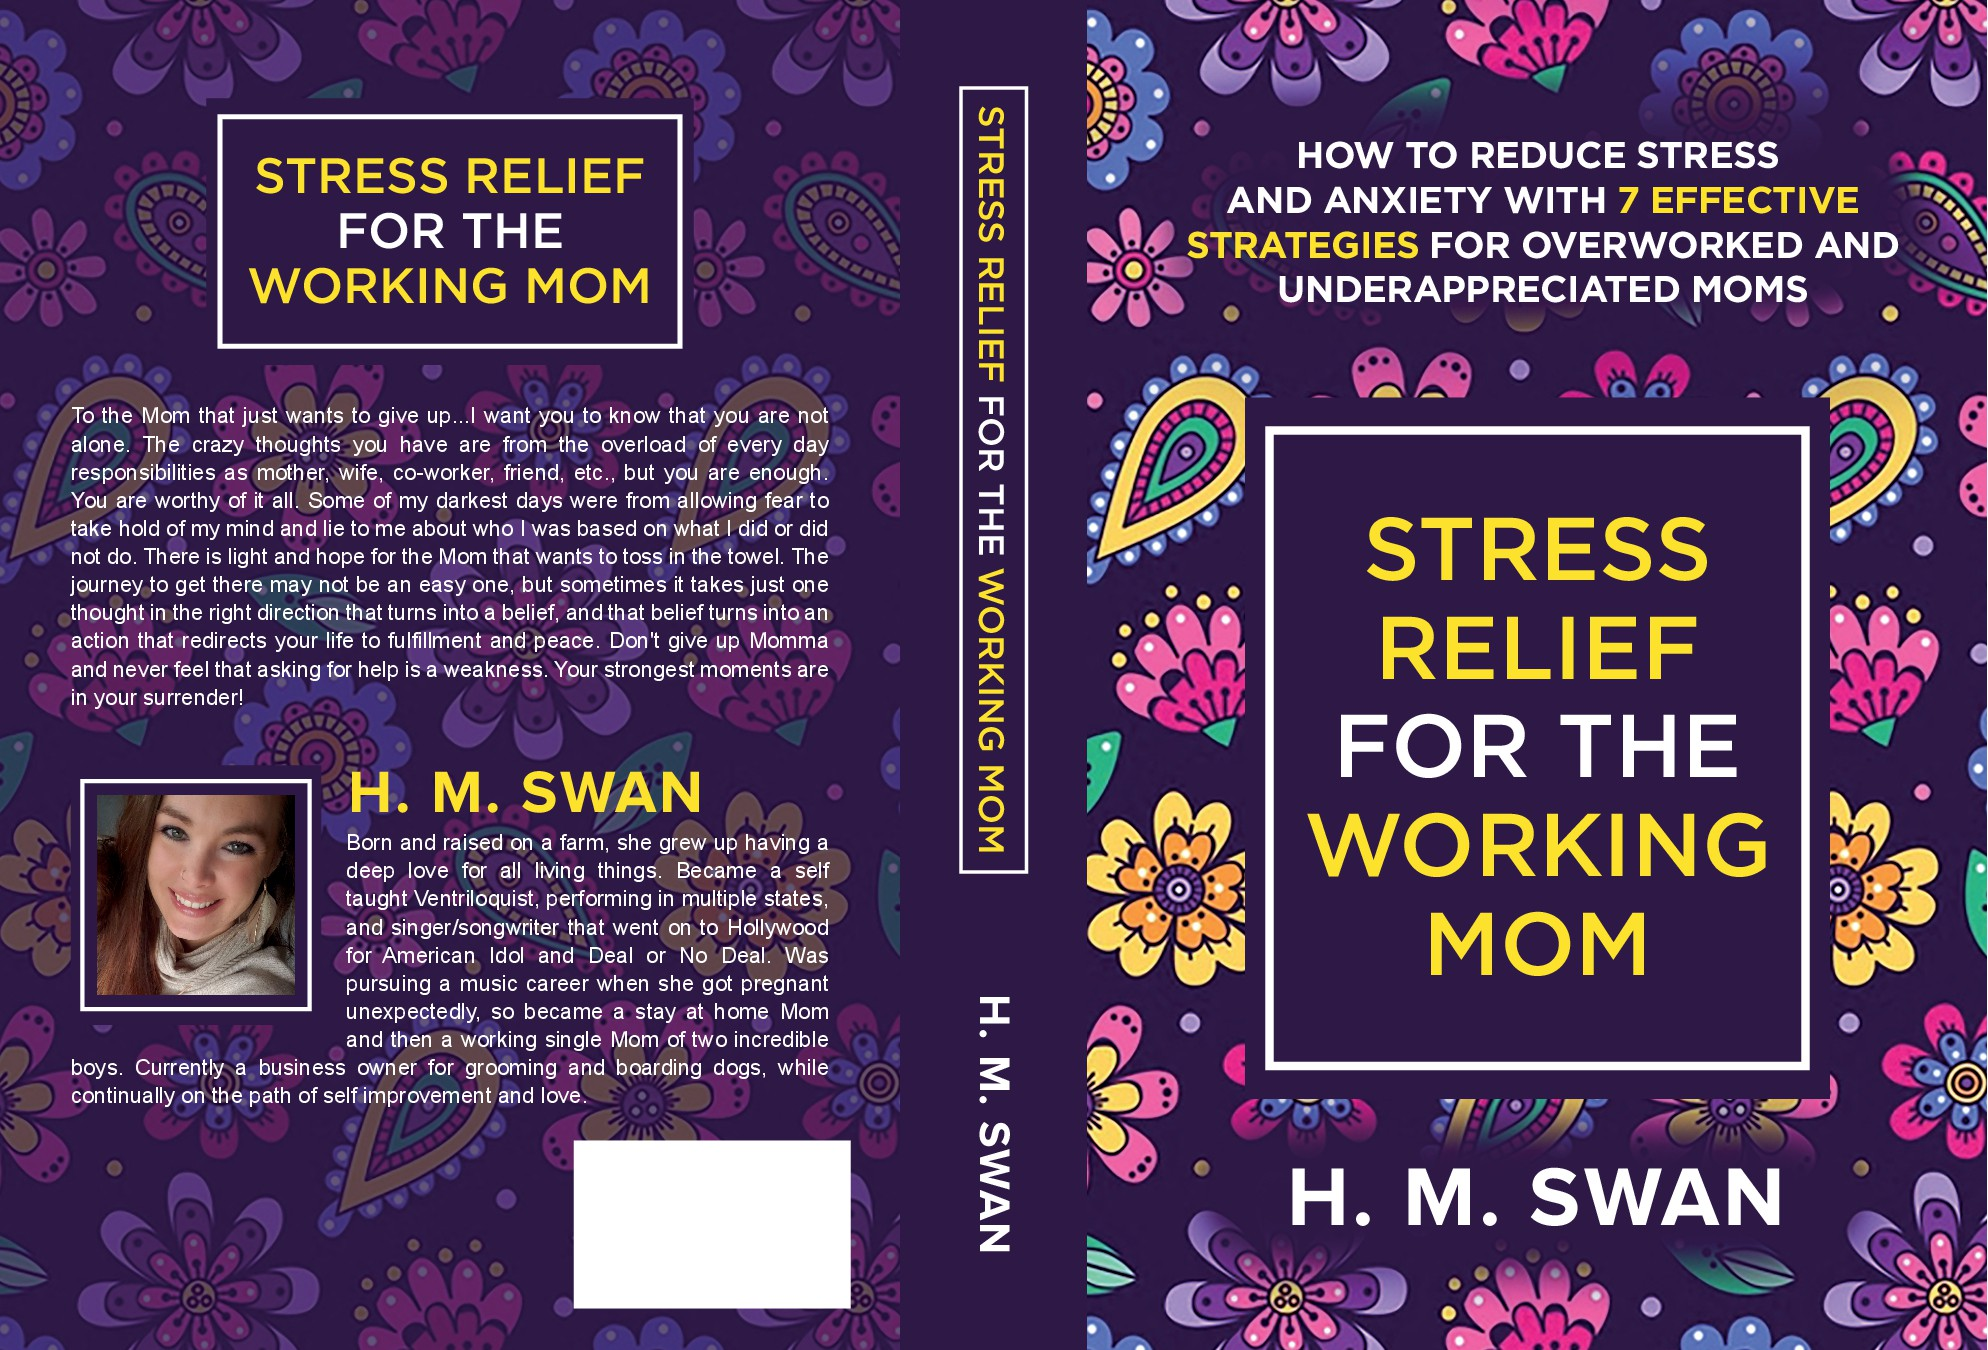 Looking for a feminine and empowering book cover for the stressed out Mom